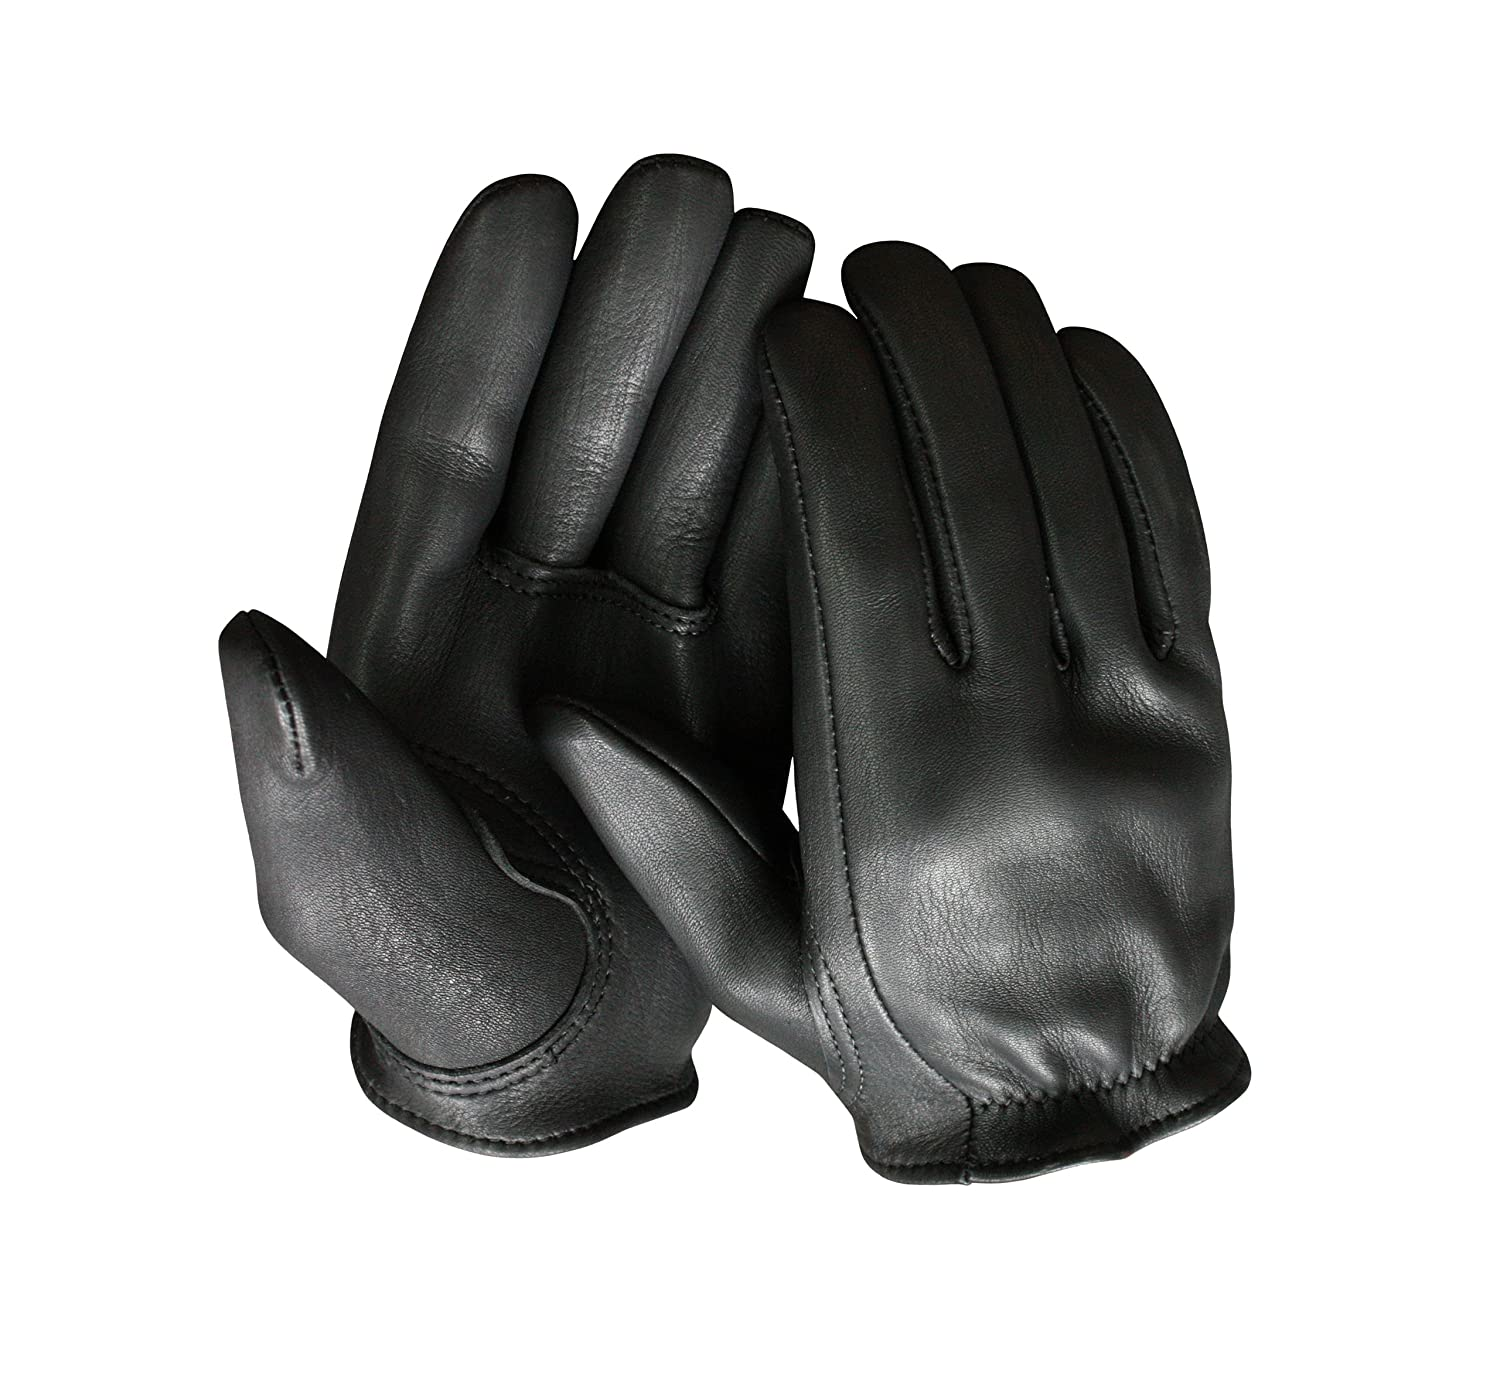 Jrc motorcycle gloves - Amazon Com Churchill Classic Short Wrist Deerskin Motorcycle Gloves Made In America Black Large Automotive